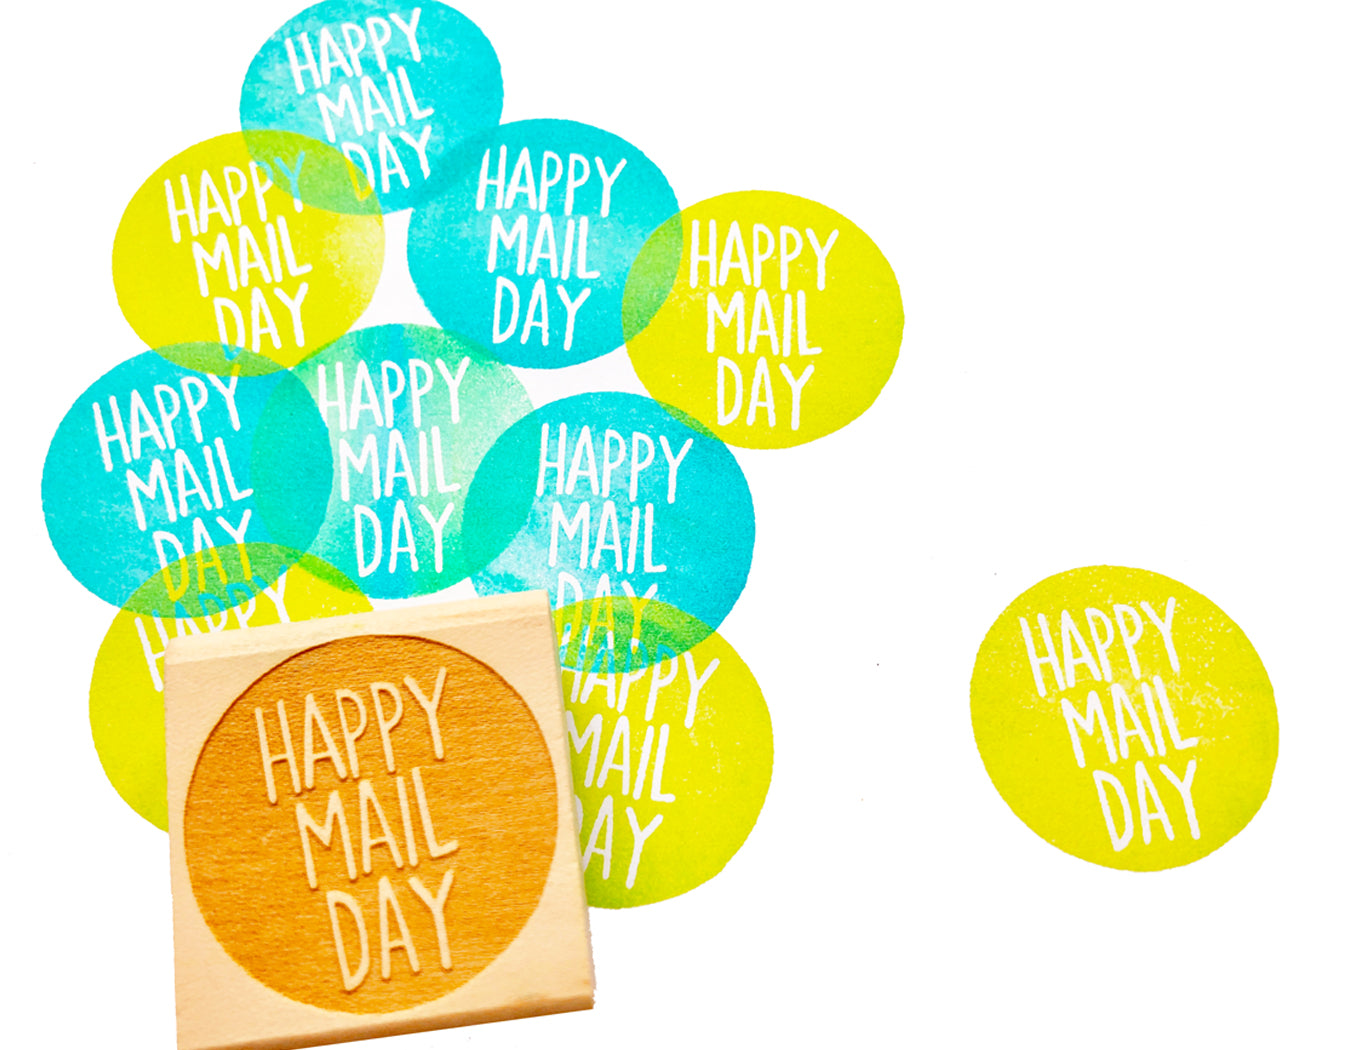 happy mail day rubber stamp | snail mail stamp | packaging stamp | calligraphy stamp for shipping, mailing, business packaging- TALK TO THE SUN